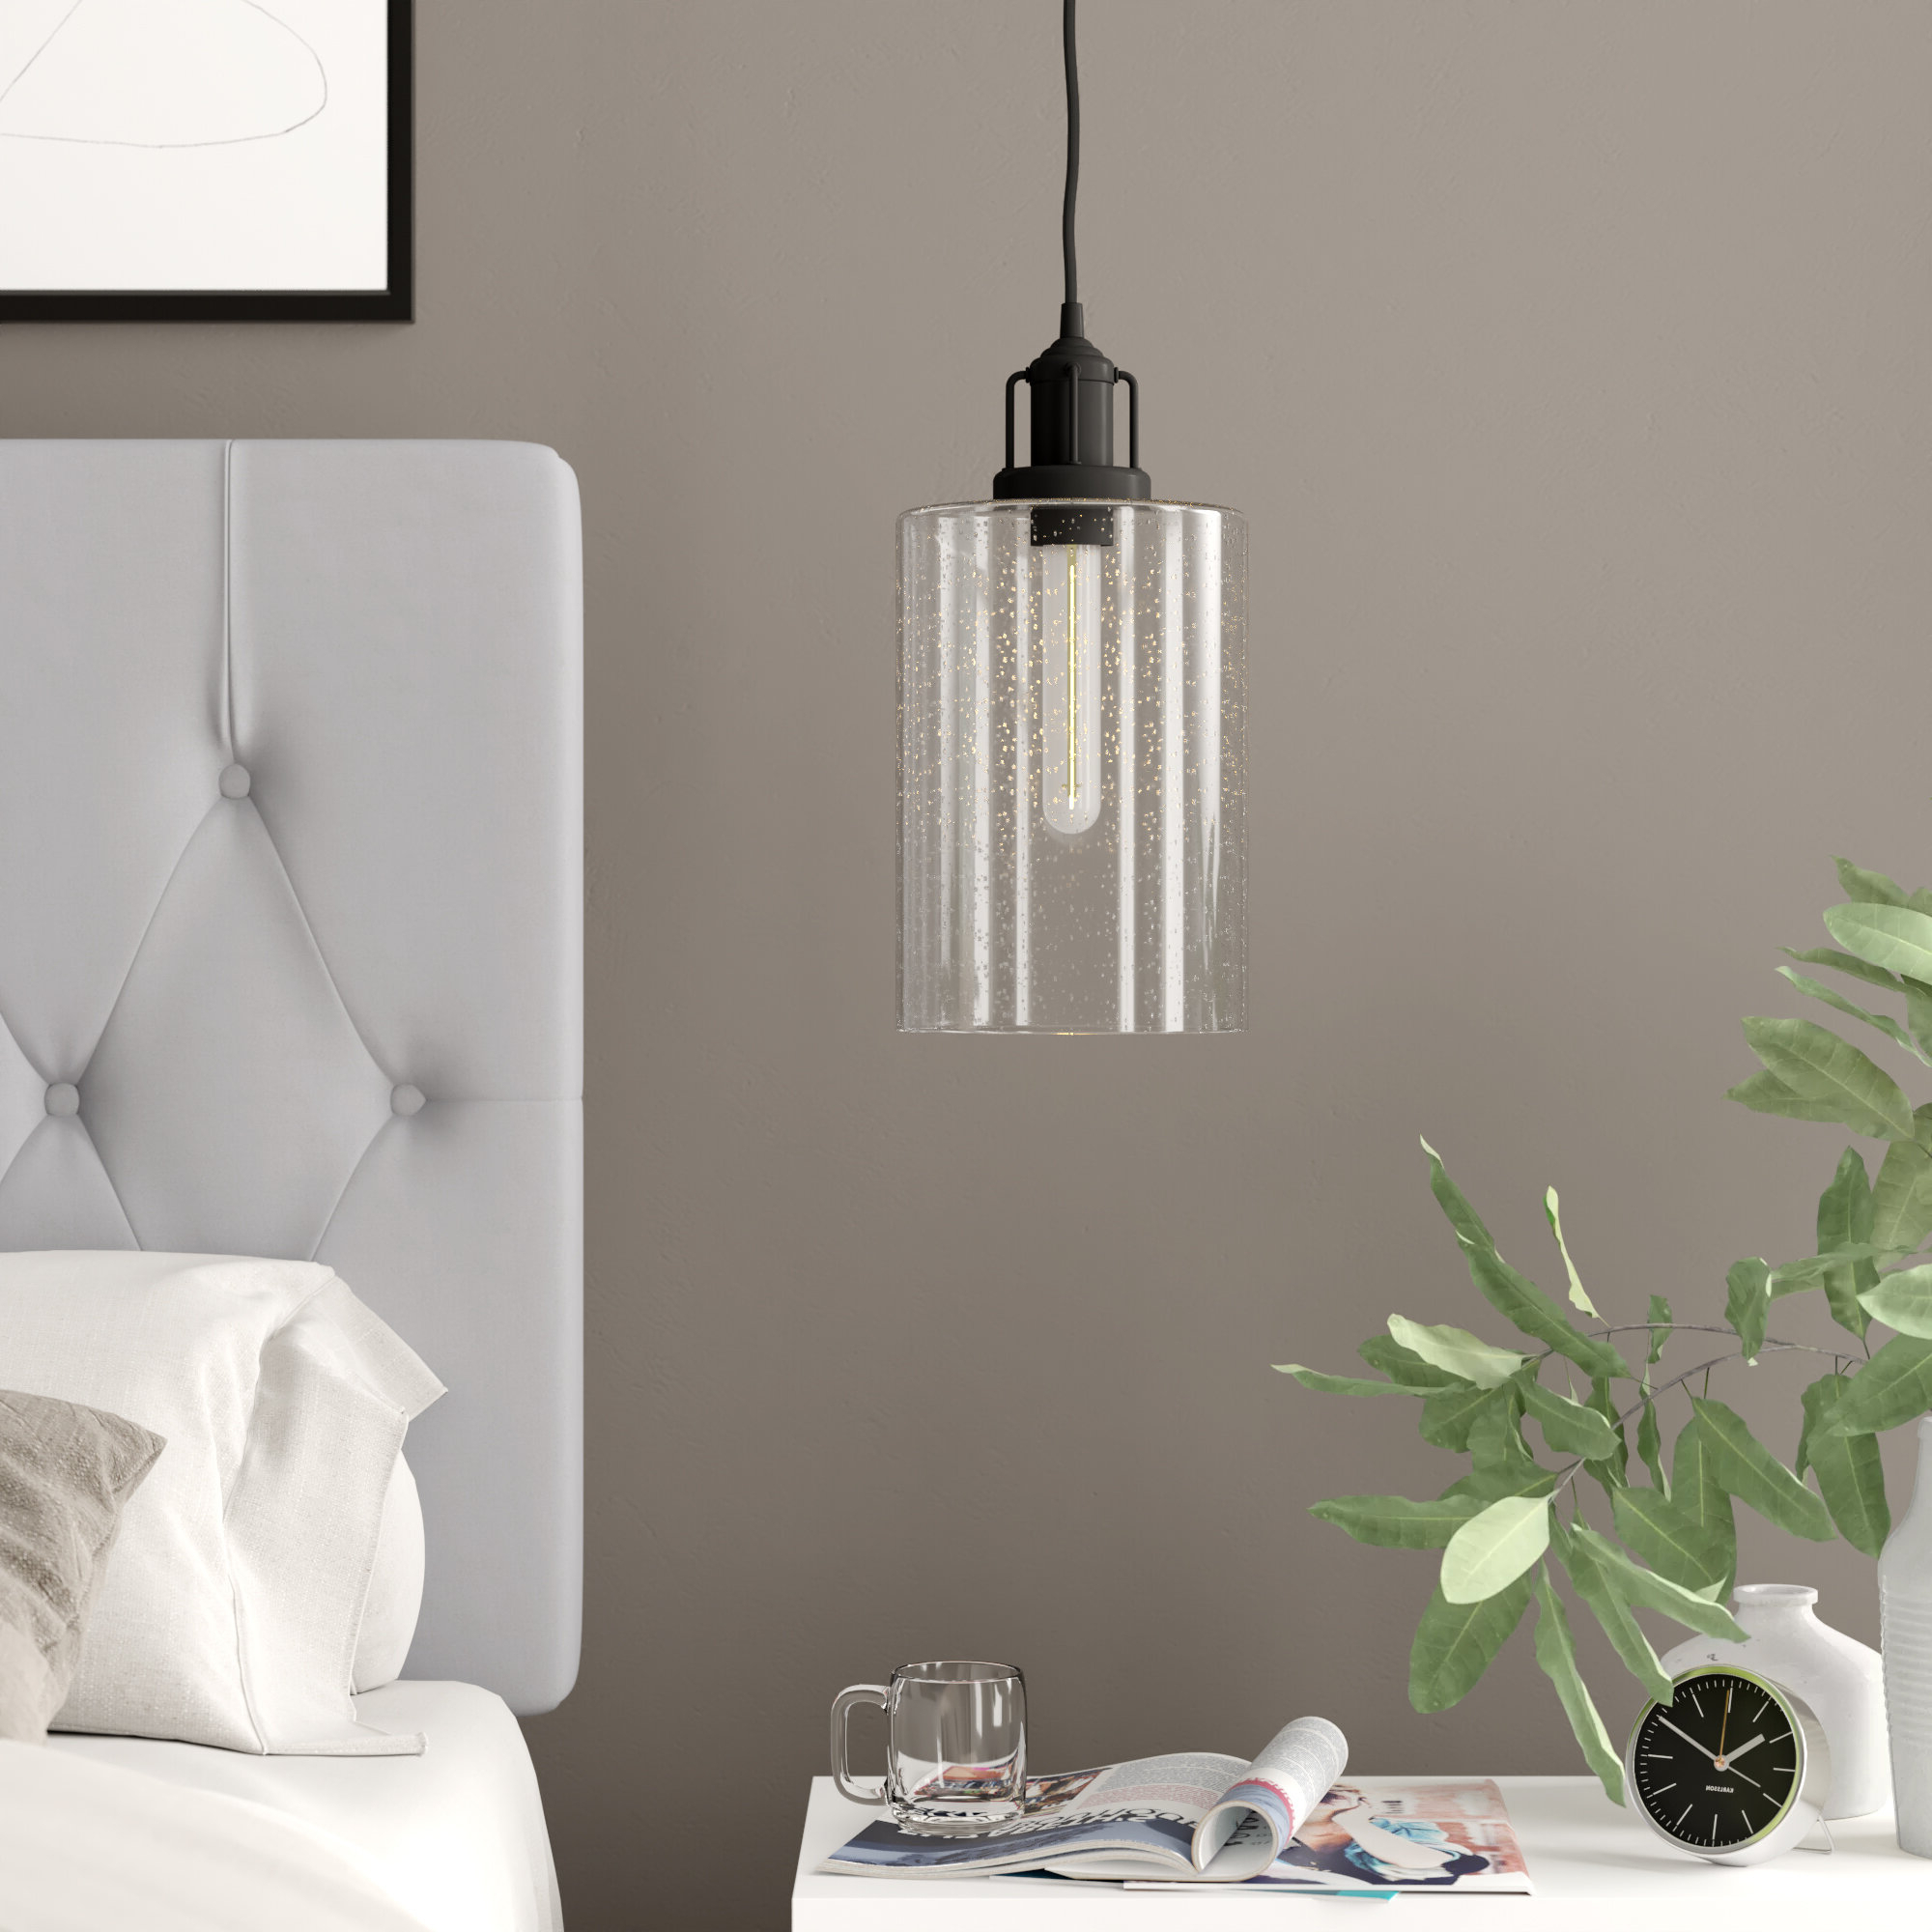 Lunenburg 1 Light Single Cylinder Pendant Throughout 2020 Angelina 1 Light Single Cylinder Pendants (View 12 of 25)